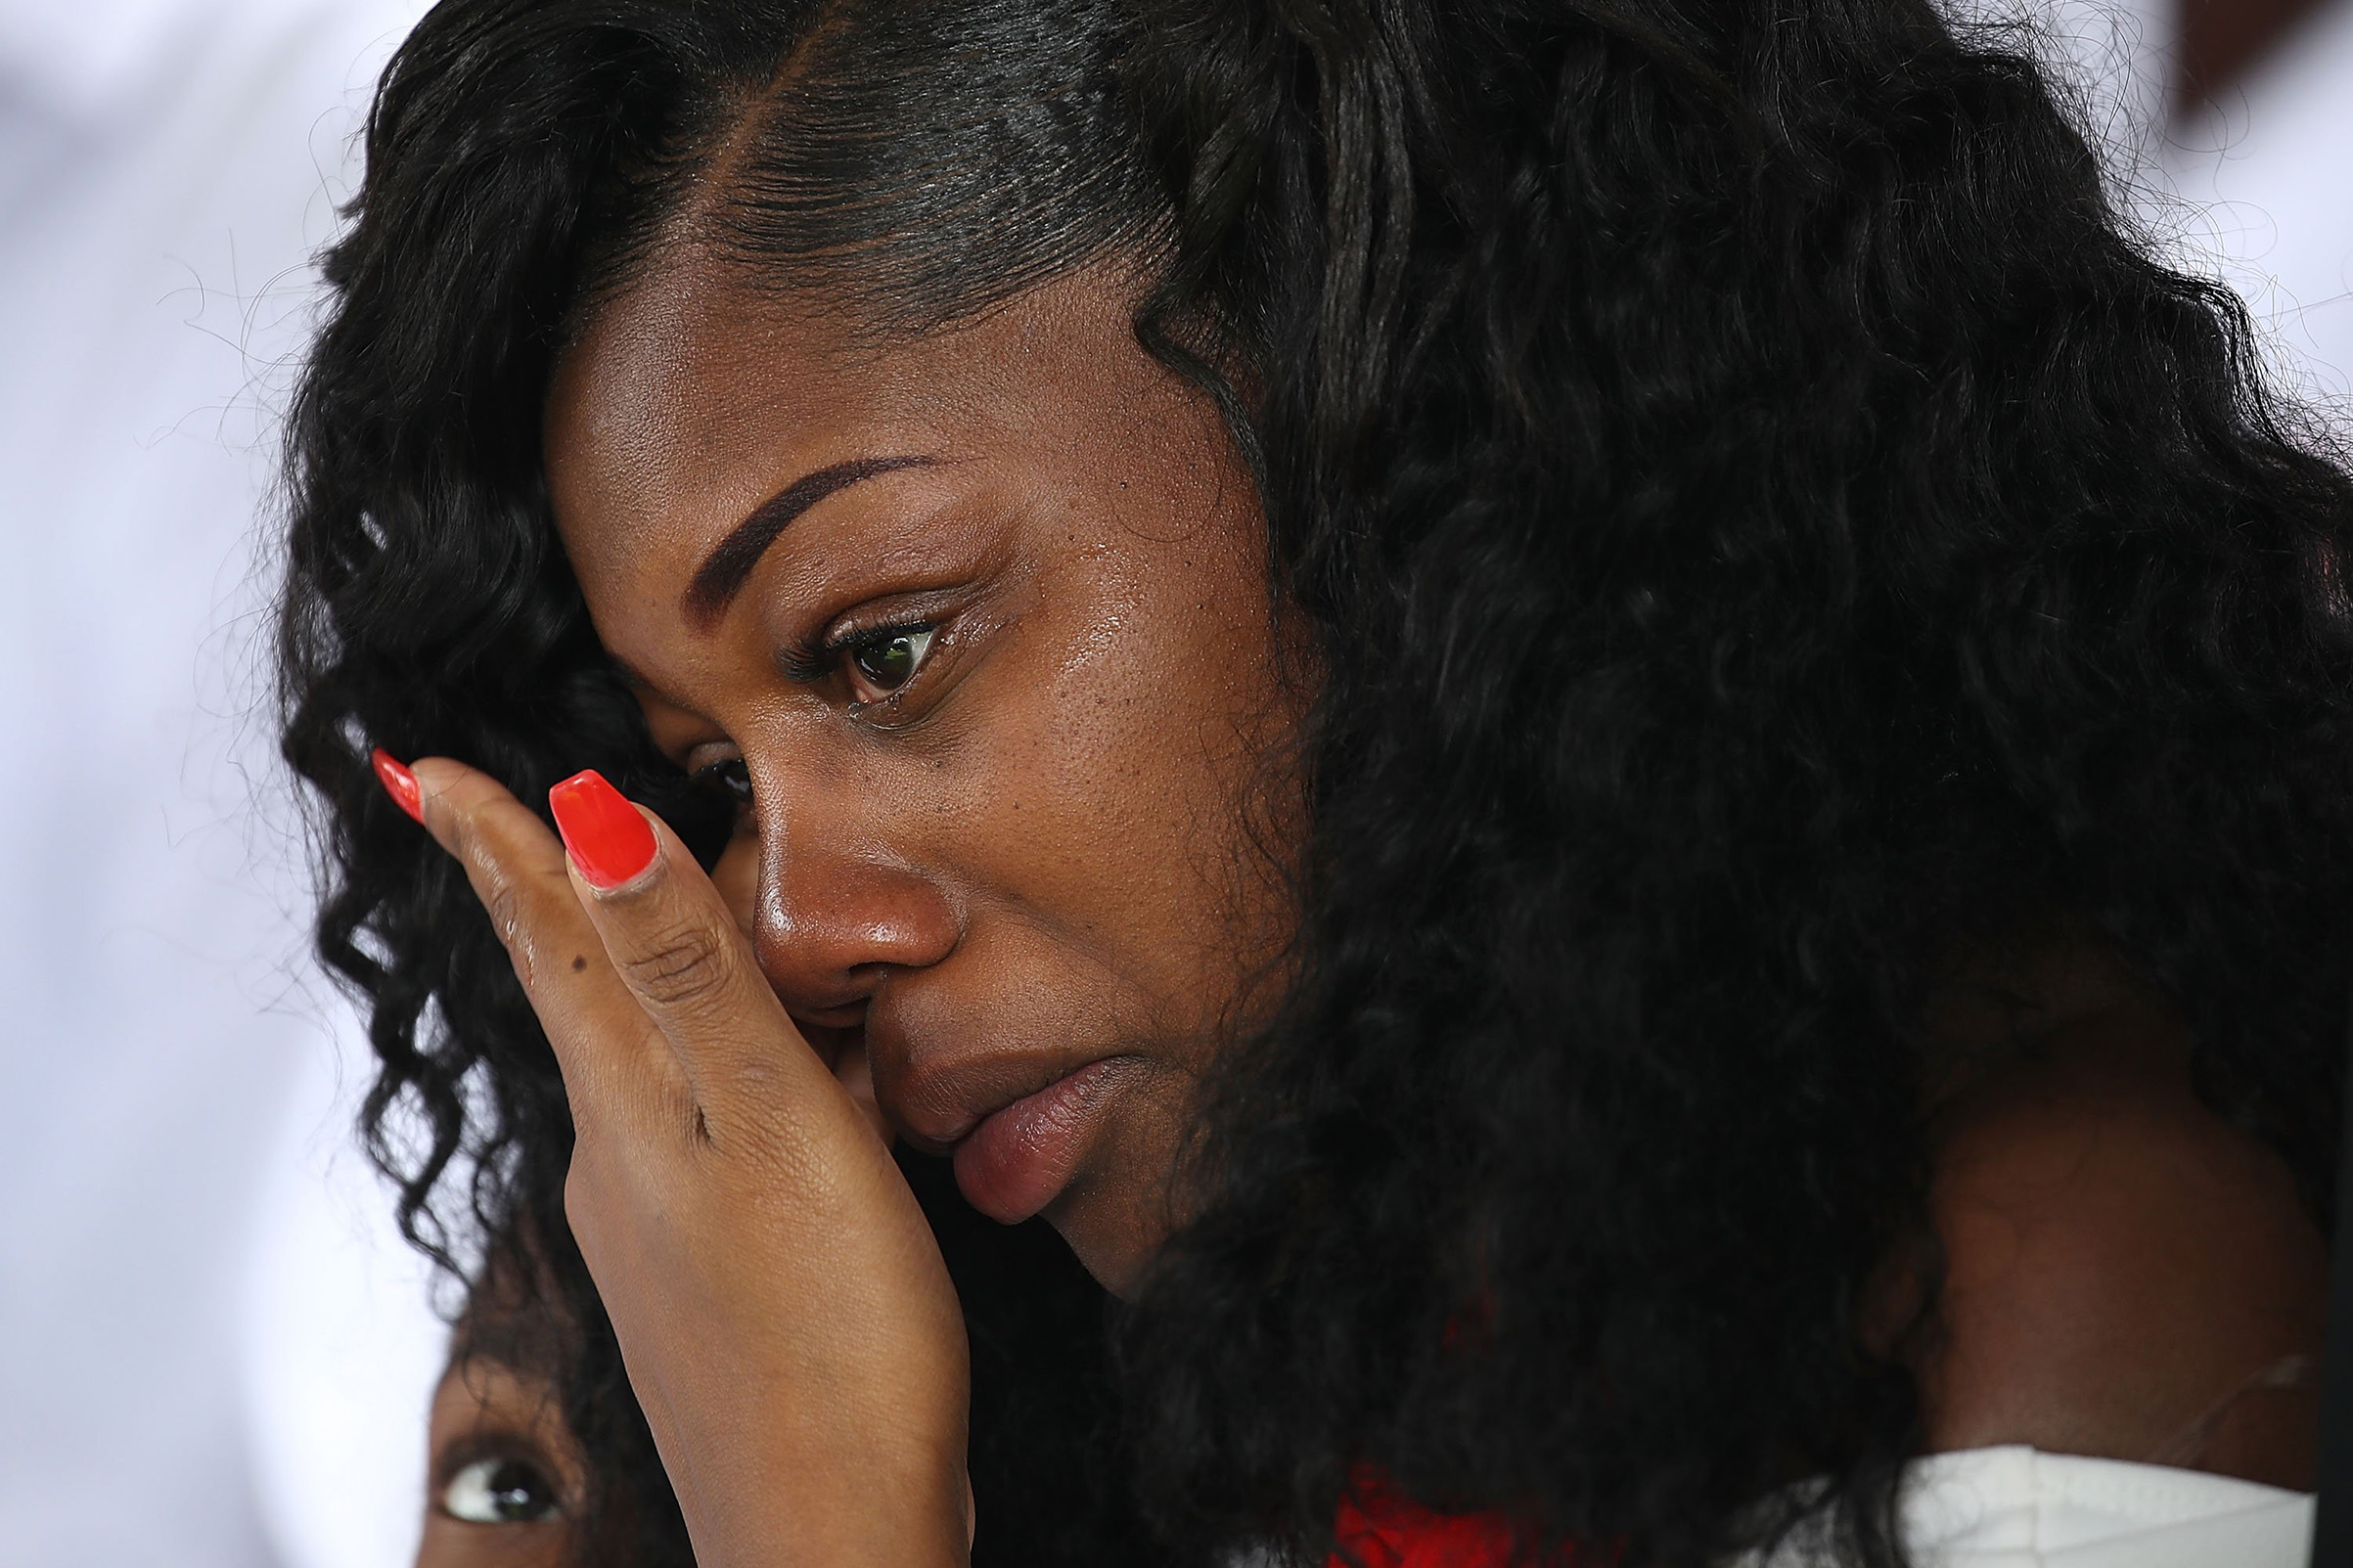 Myeshia Johnson wipes away tears during the burial service for her husband U.S. Army Sgt. La David Johnson at the Memorial Gardens East cemetery on Oct. 21, 2017 in Hollywood, Fla.